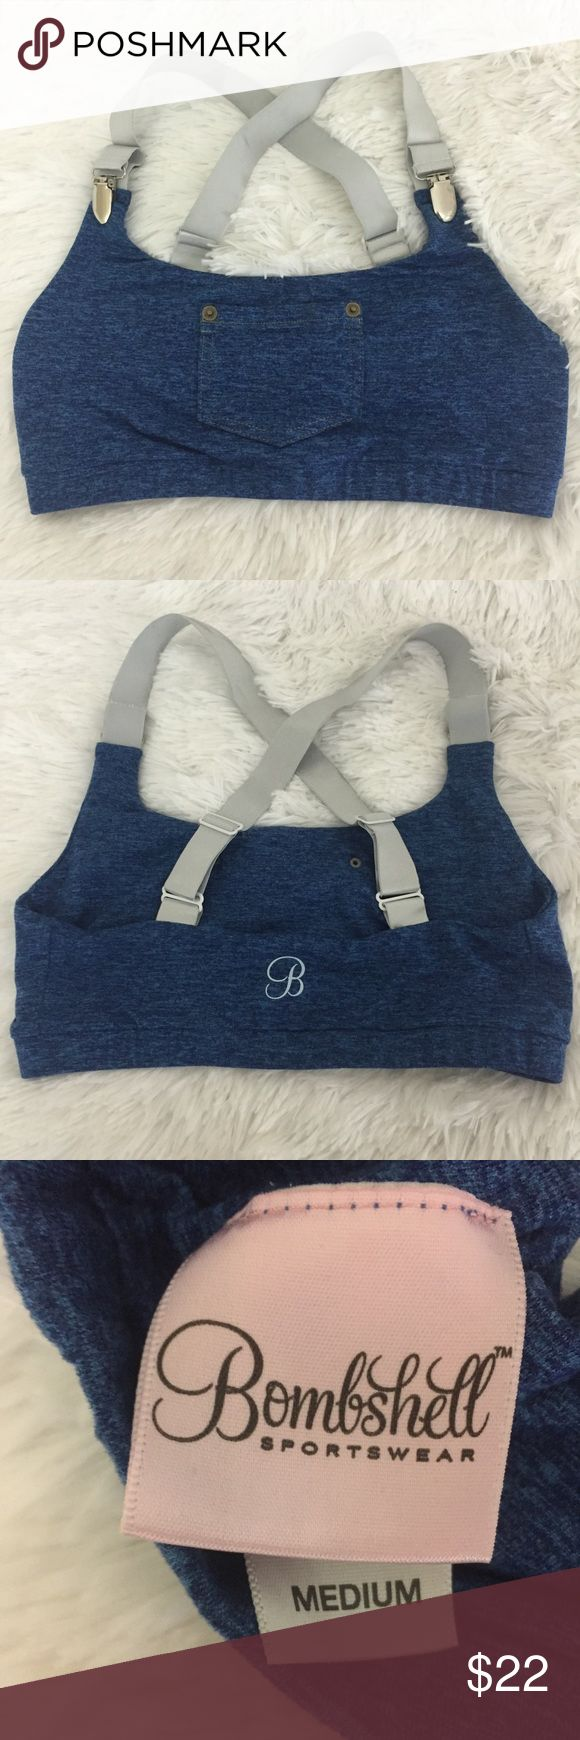 Bombshell sportswear bra top denim style, M This bombshell sportswear sports bra top is in excellent pre owned condition. It was worn once and is like new!! It has a faux denim look with suspended straps and a cute front pocket! Runs true to size. bombshell sportswear Intimates & Sleepwear Bras